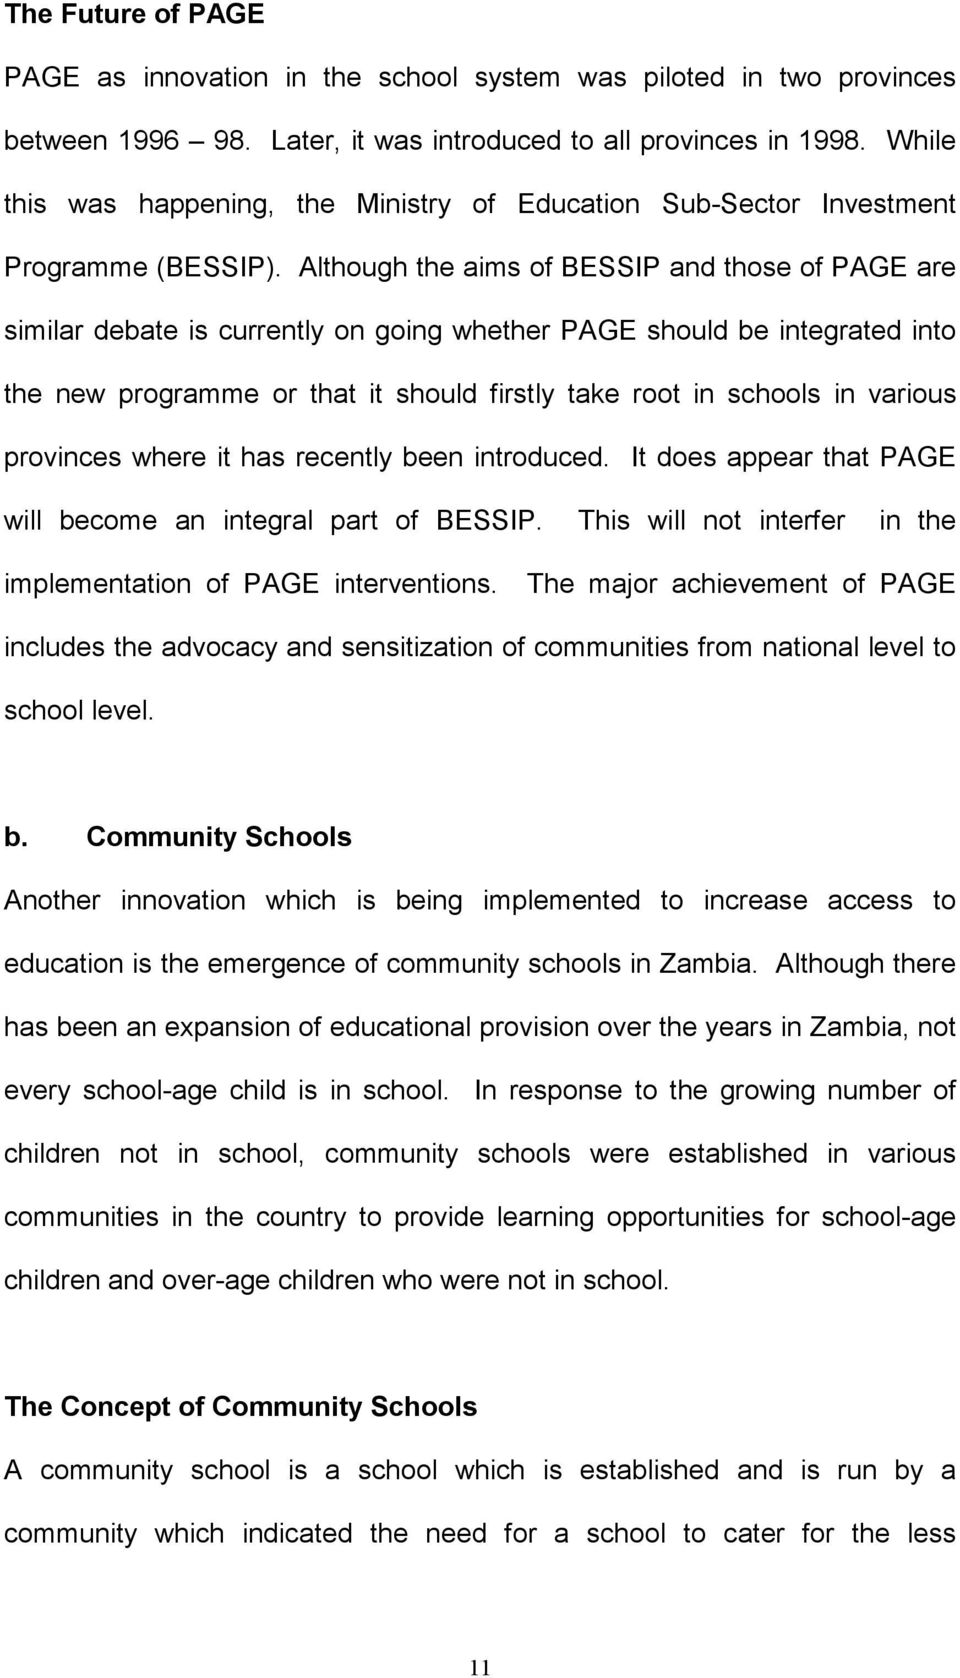 Although the aims of BESSIP and those of PAGE are similar debate is currently on going whether PAGE should be integrated into the new programme or that it should firstly take root in schools in